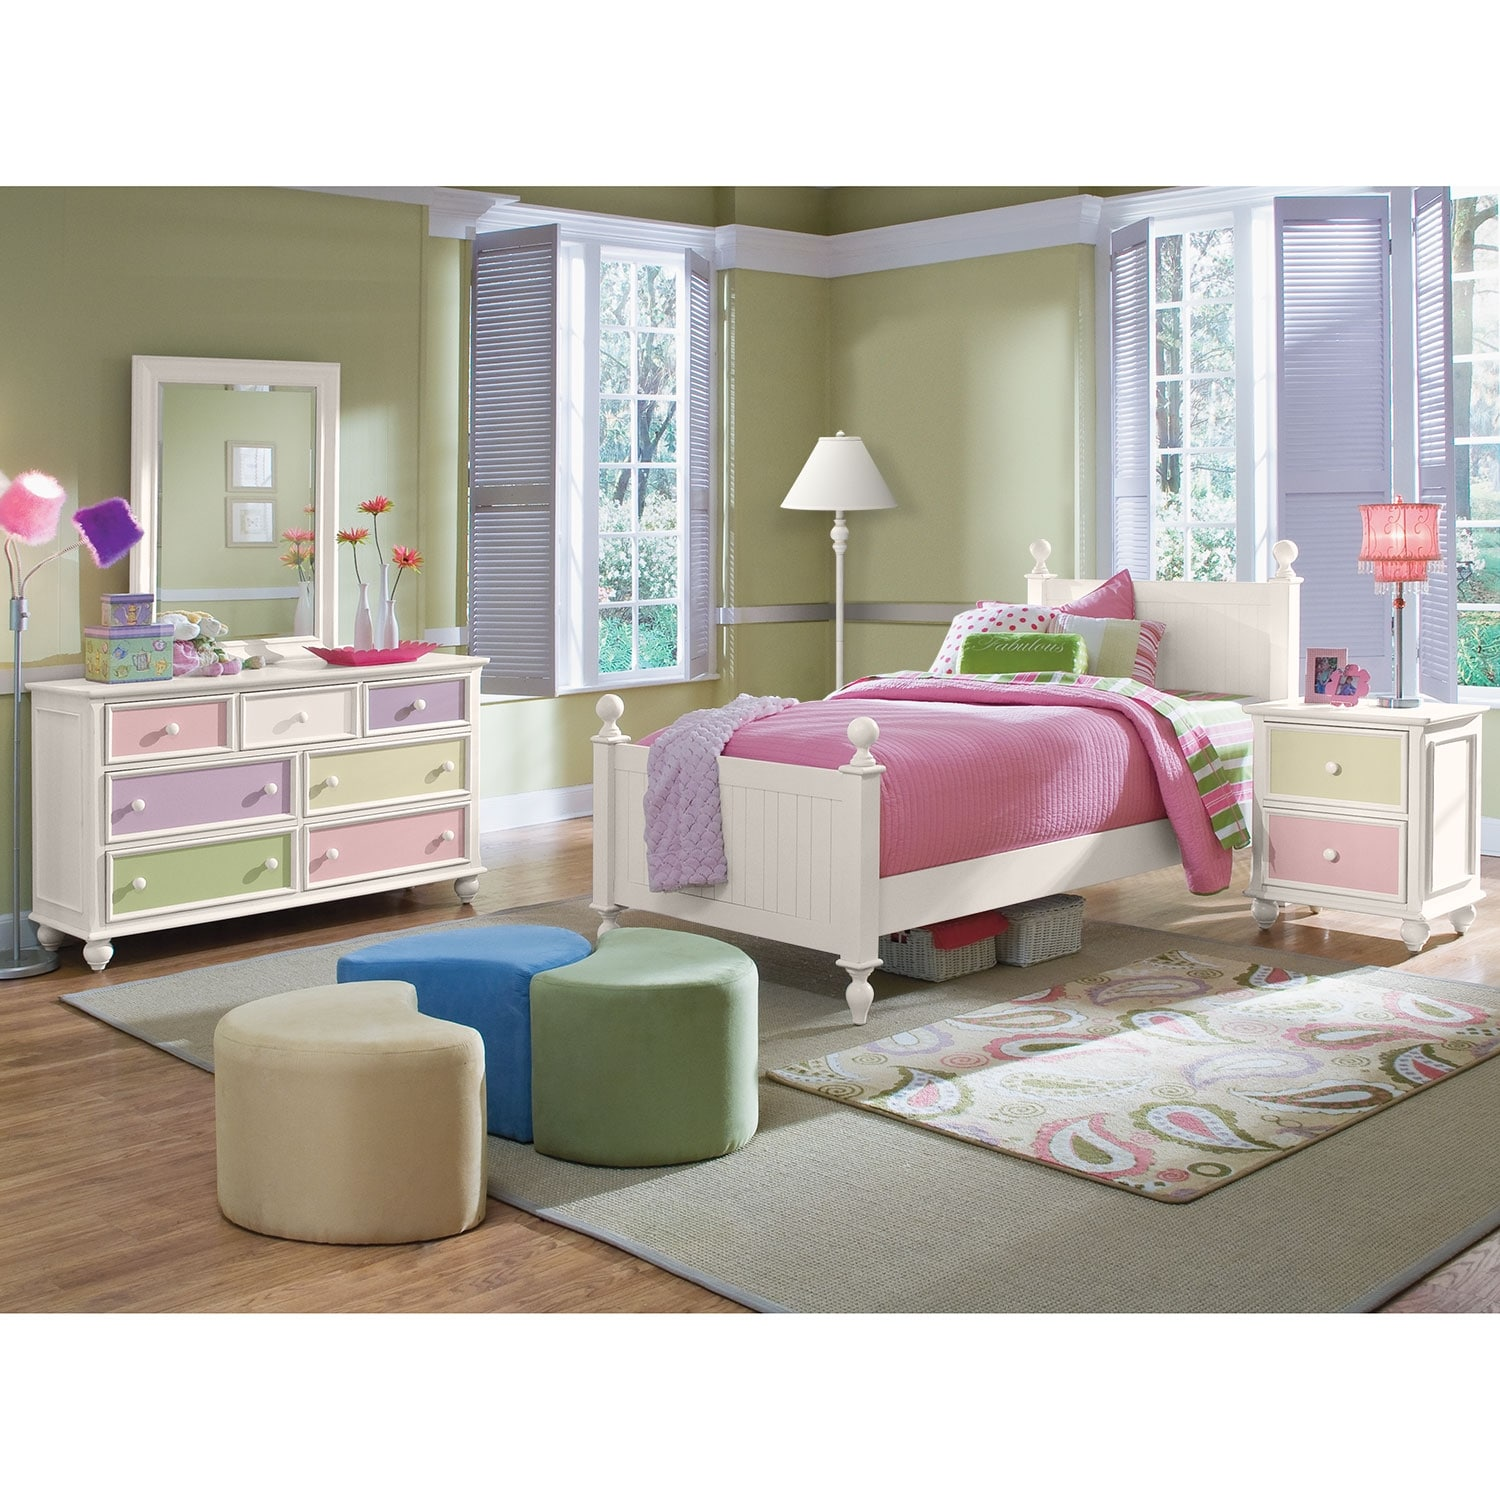 colorworks 6 piece twin bedroom set white value city furniture. Black Bedroom Furniture Sets. Home Design Ideas